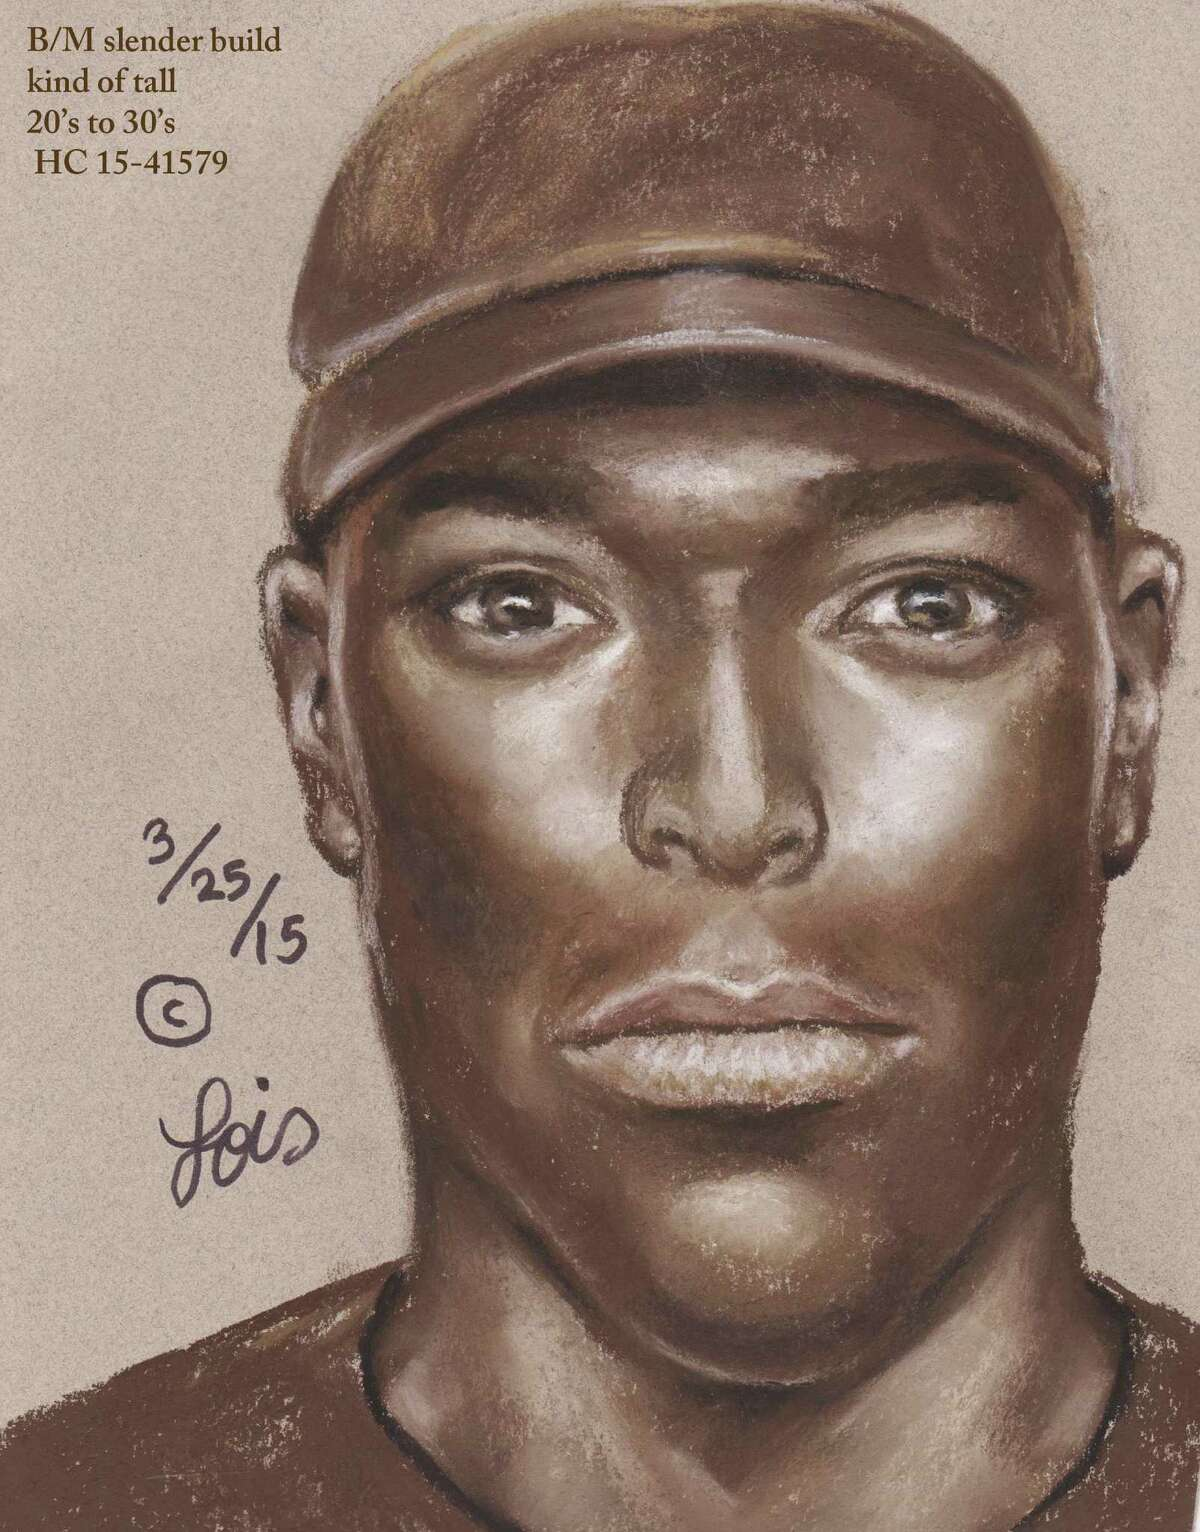 Authorities have released a sketch of a man suspected of shooting and wounding a woman in a road-rage incident during rush hour Friday morning along Interstate 45 in north Harris County.